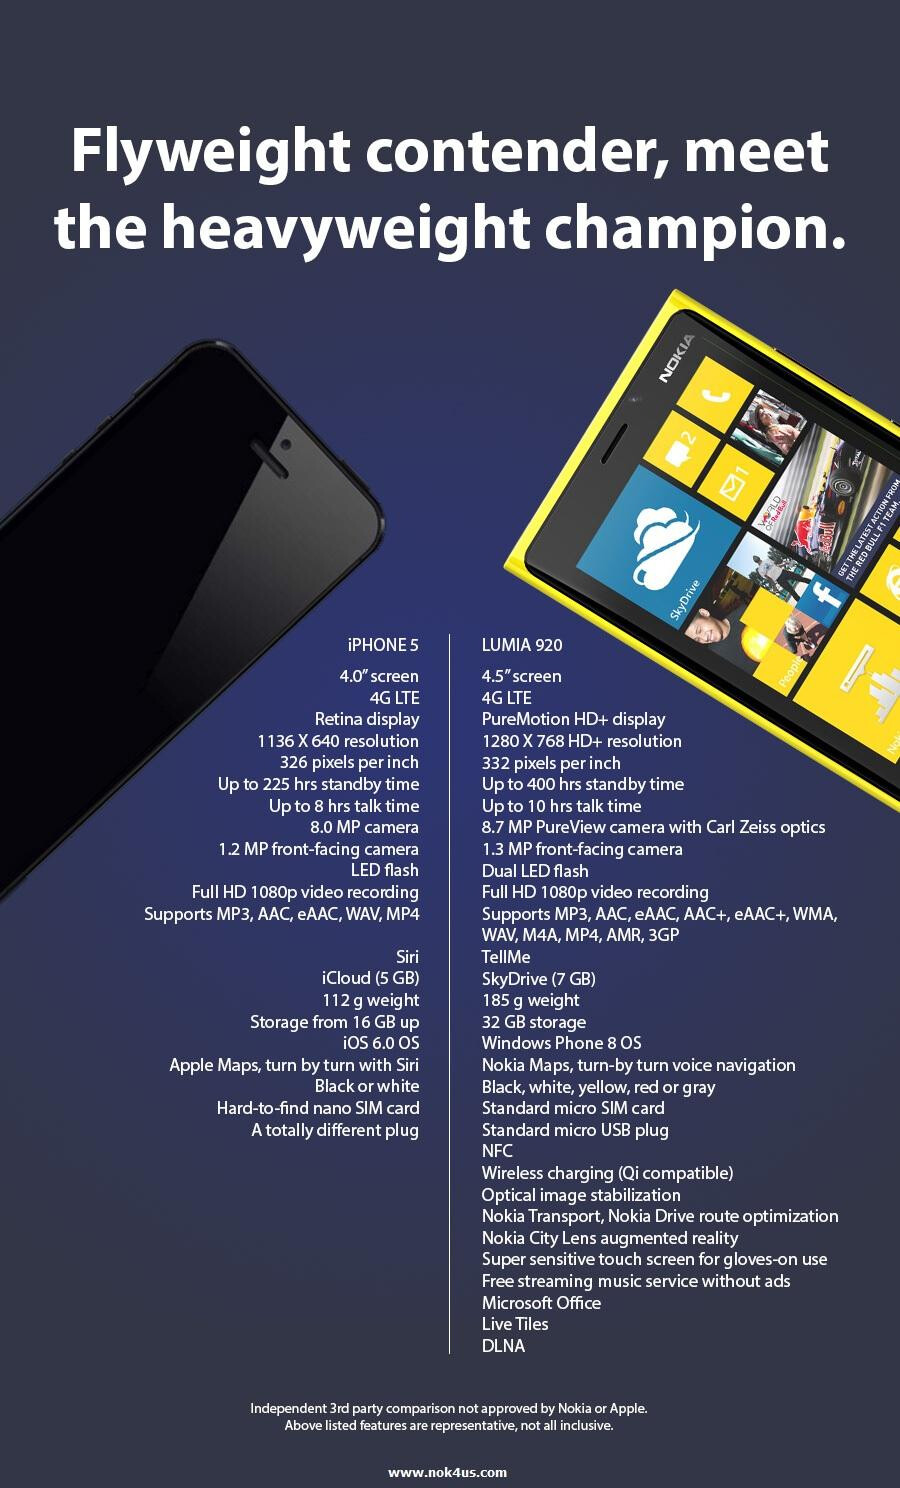 http://i-cdn.phonearena.com/images/articles/67368-image/iphone-5-vs-lumia-920.jpg